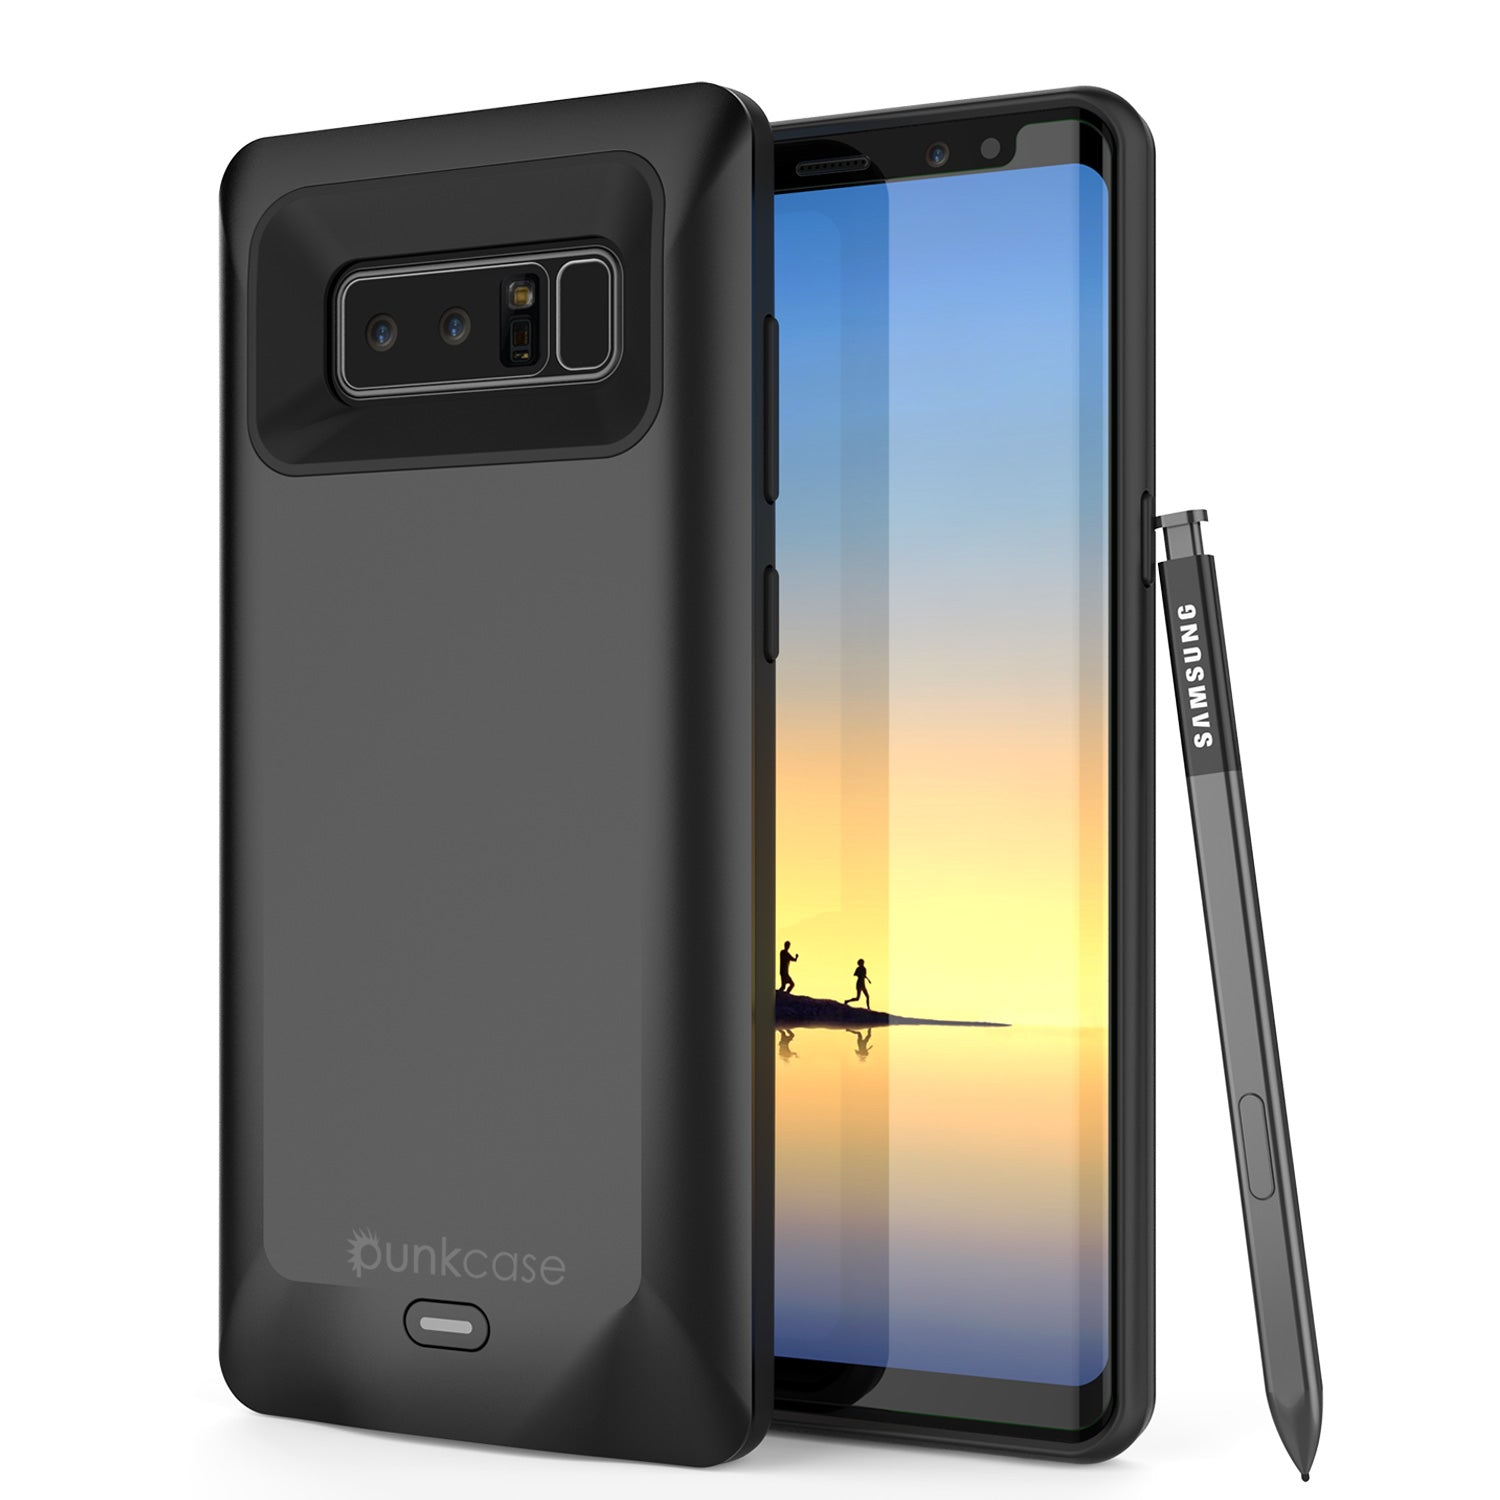 Galaxy Note 8 Battery Case, Punkcase 5000mAH Charger Case W/ Screen Protector | Integrated Kickstand & USB Port | IntelSwitch [Black]